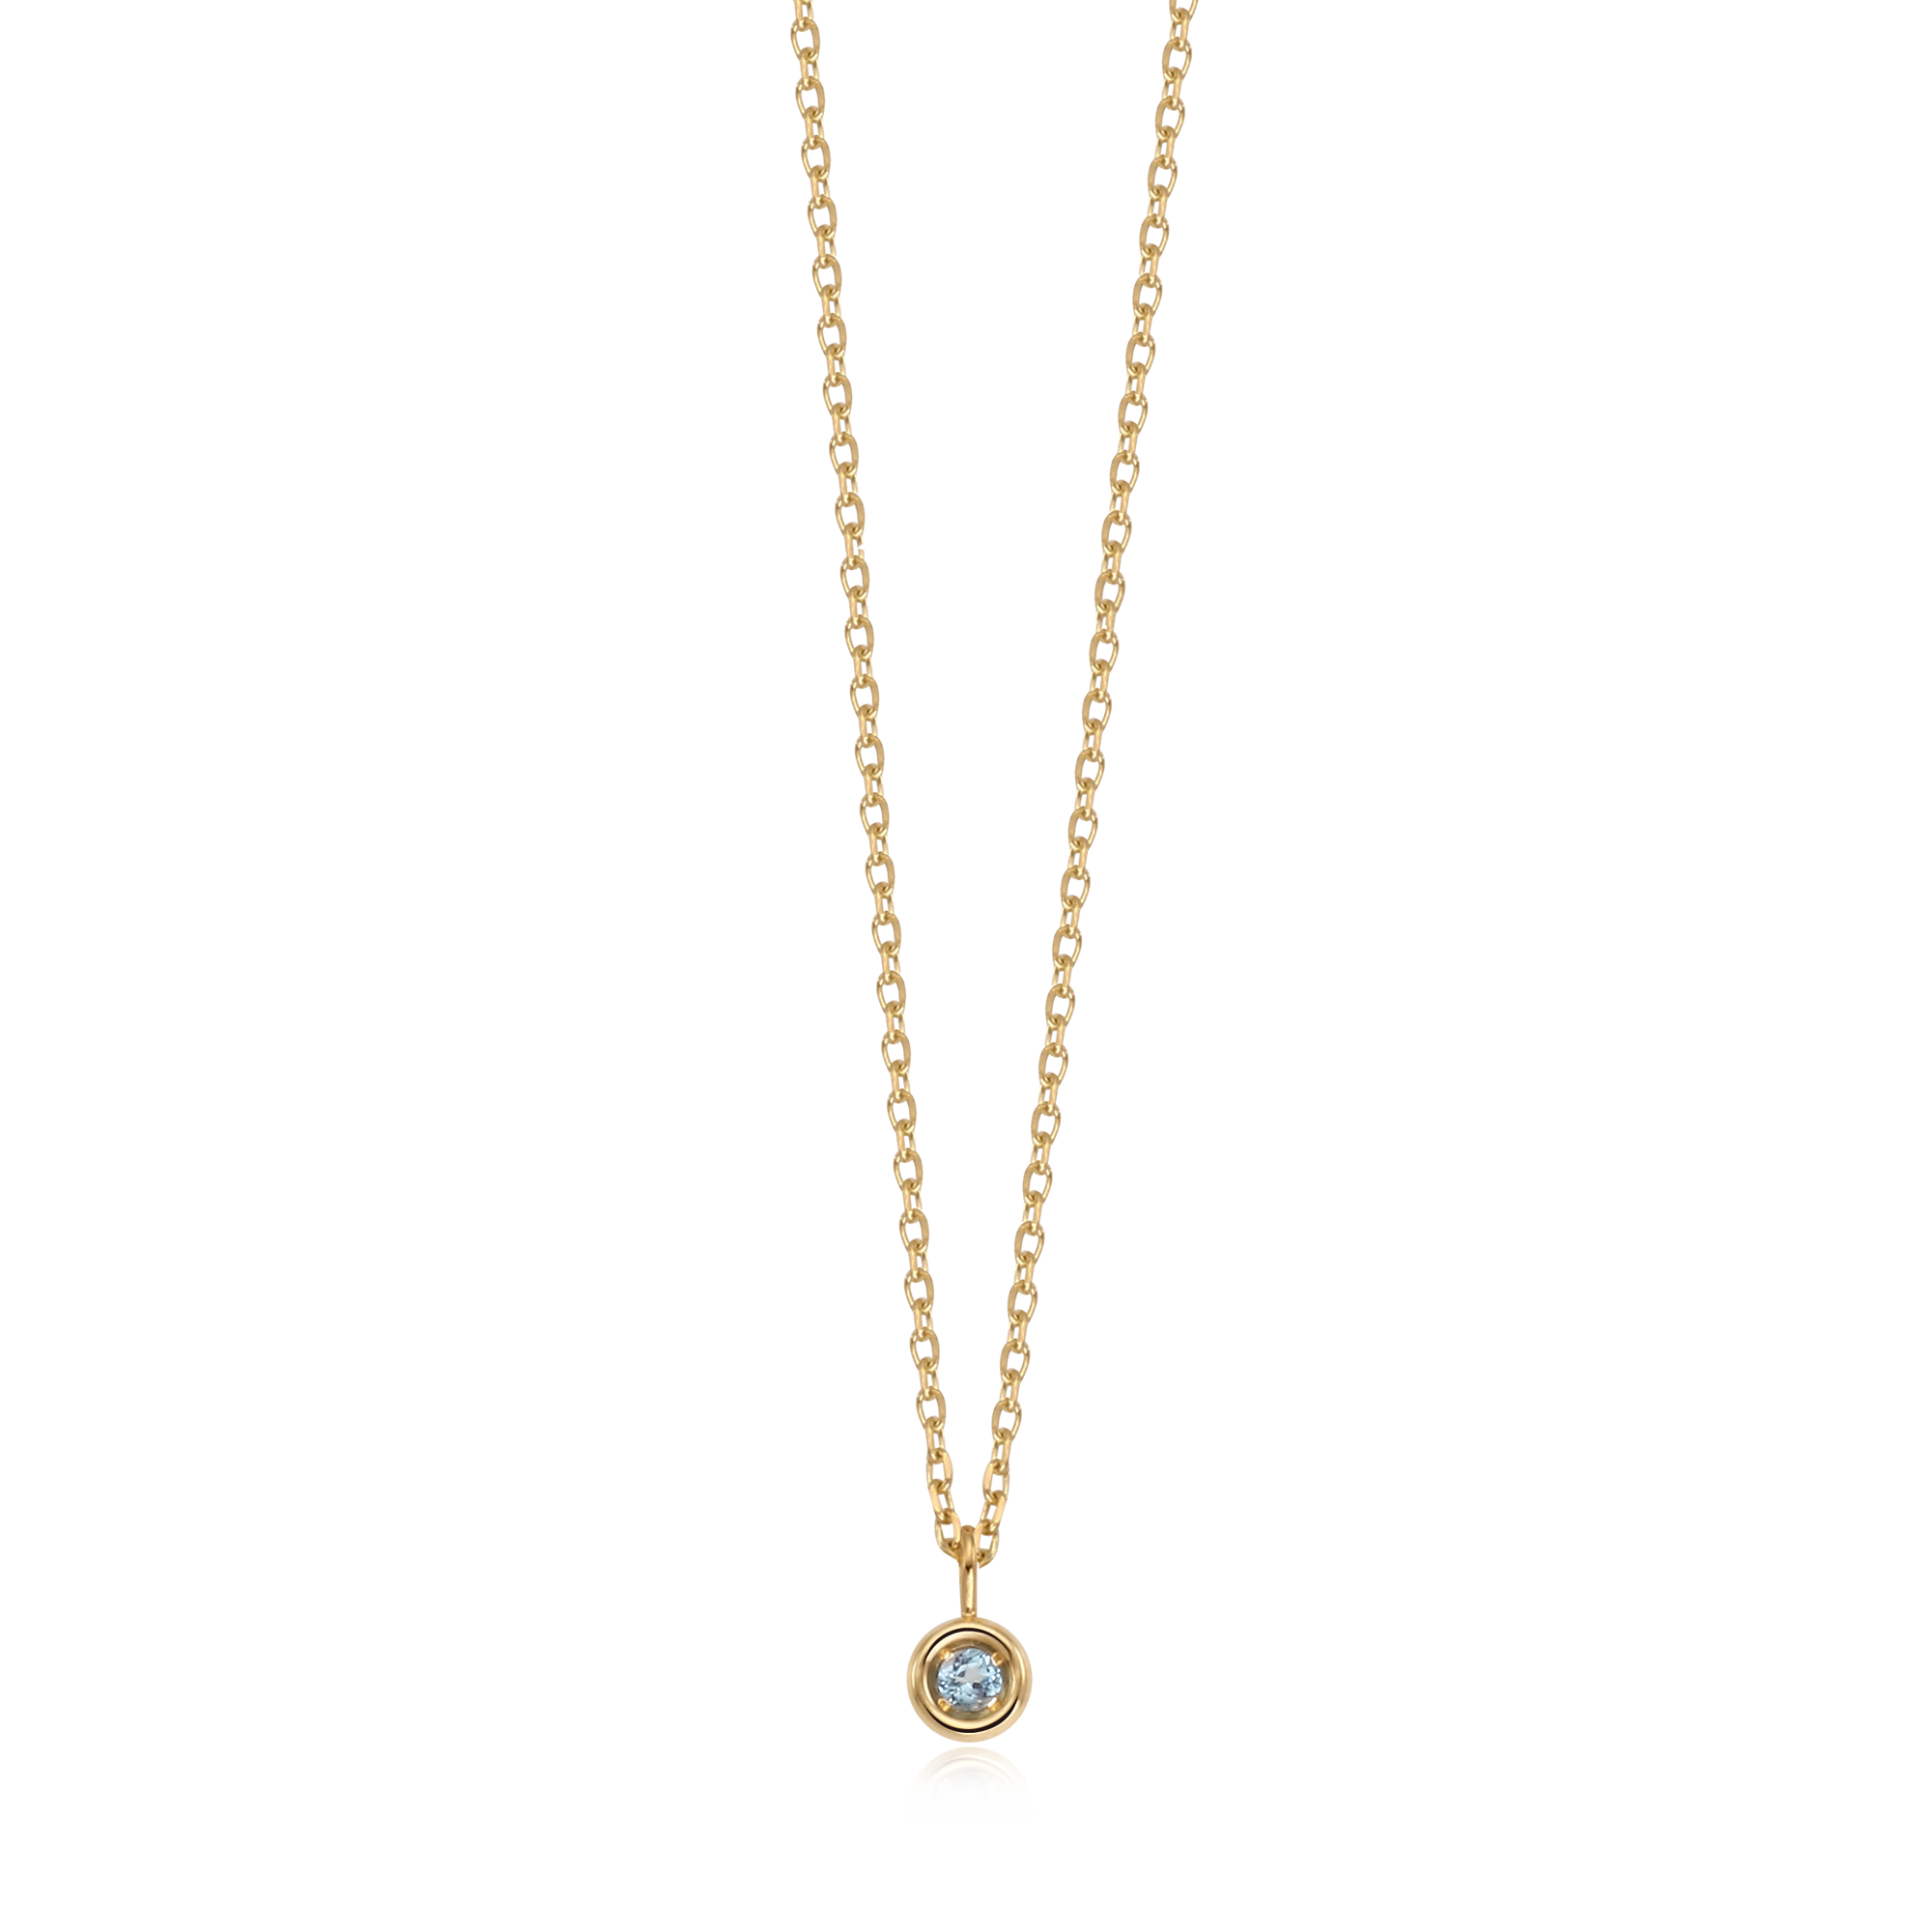 14K/18K Gold Topaz Birthstone Necklace December